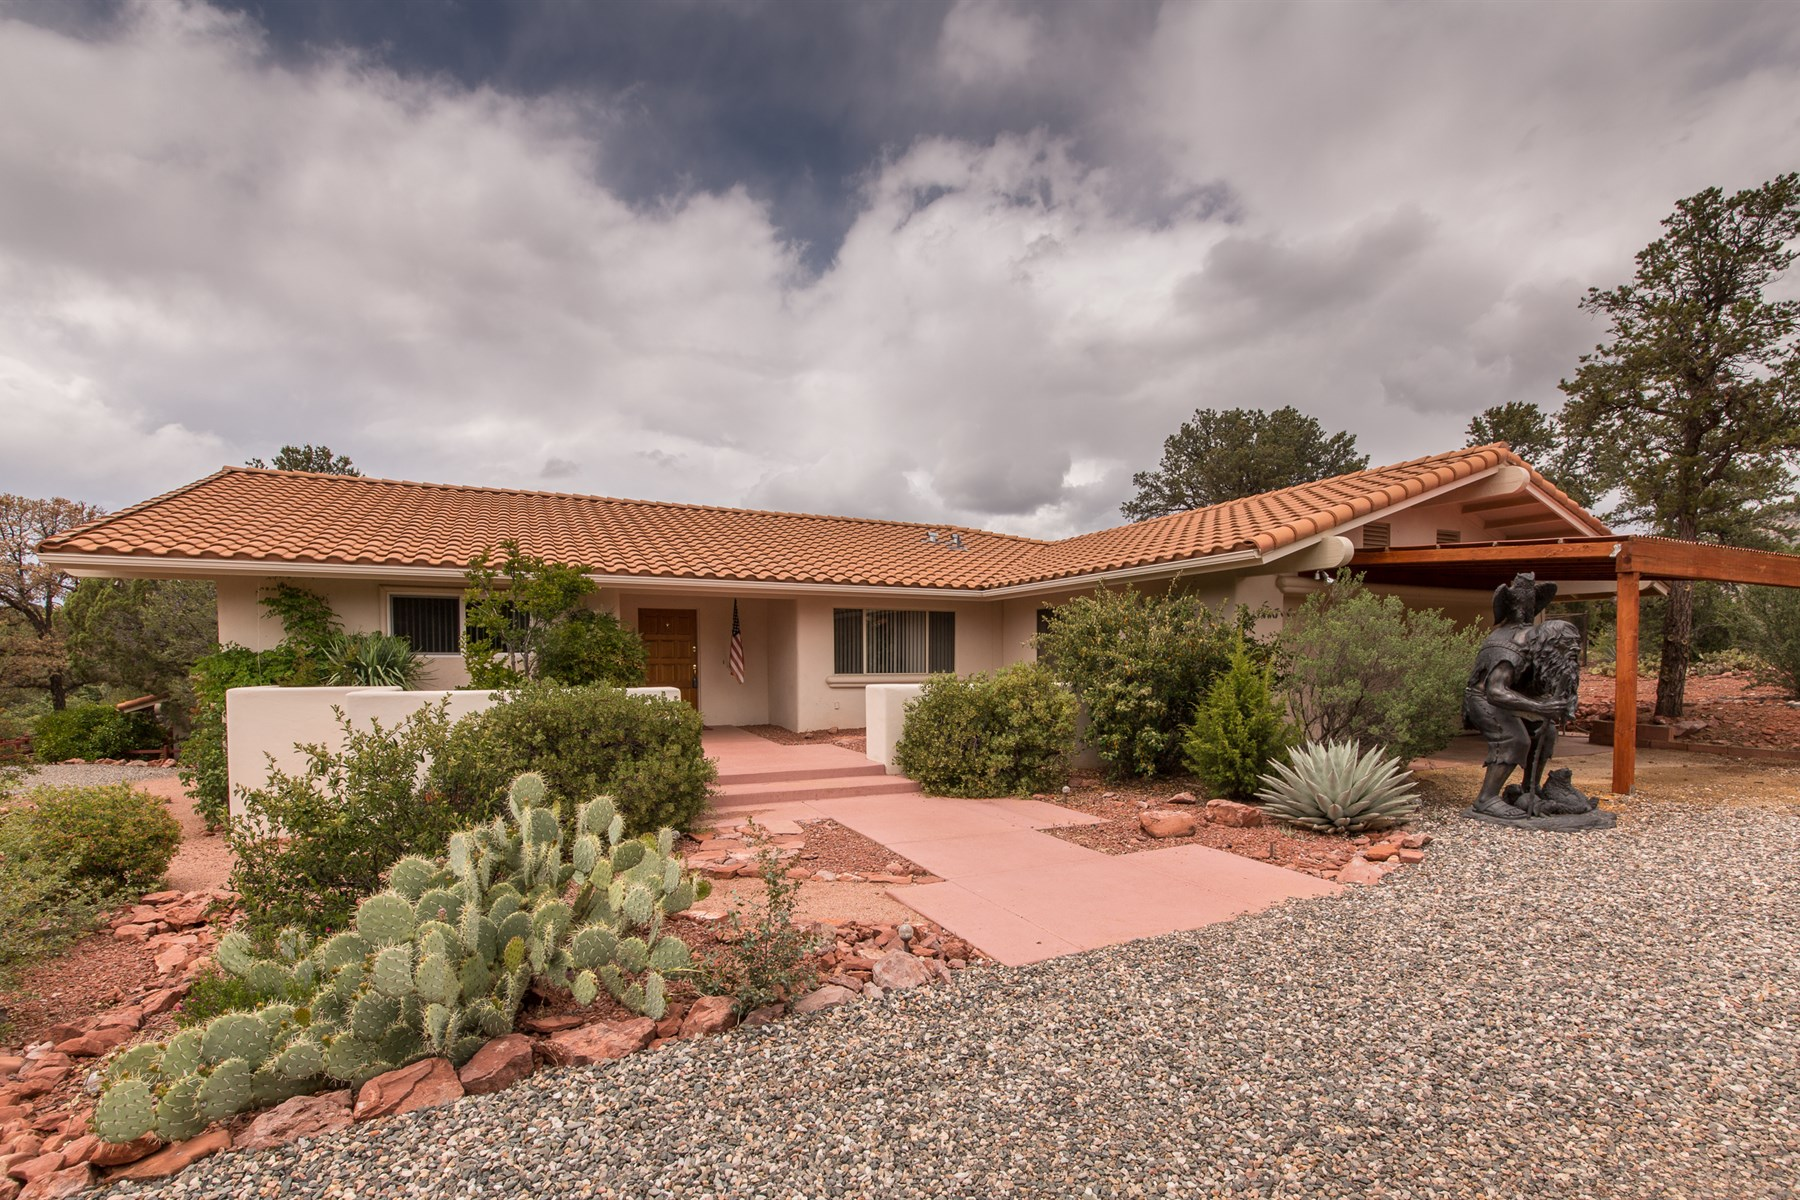 Single Family Home for Sale at Pleasant home in an upscale neighborhood with lots of versatile space. 11 Emerald Court Sedona, Arizona 86336 United States